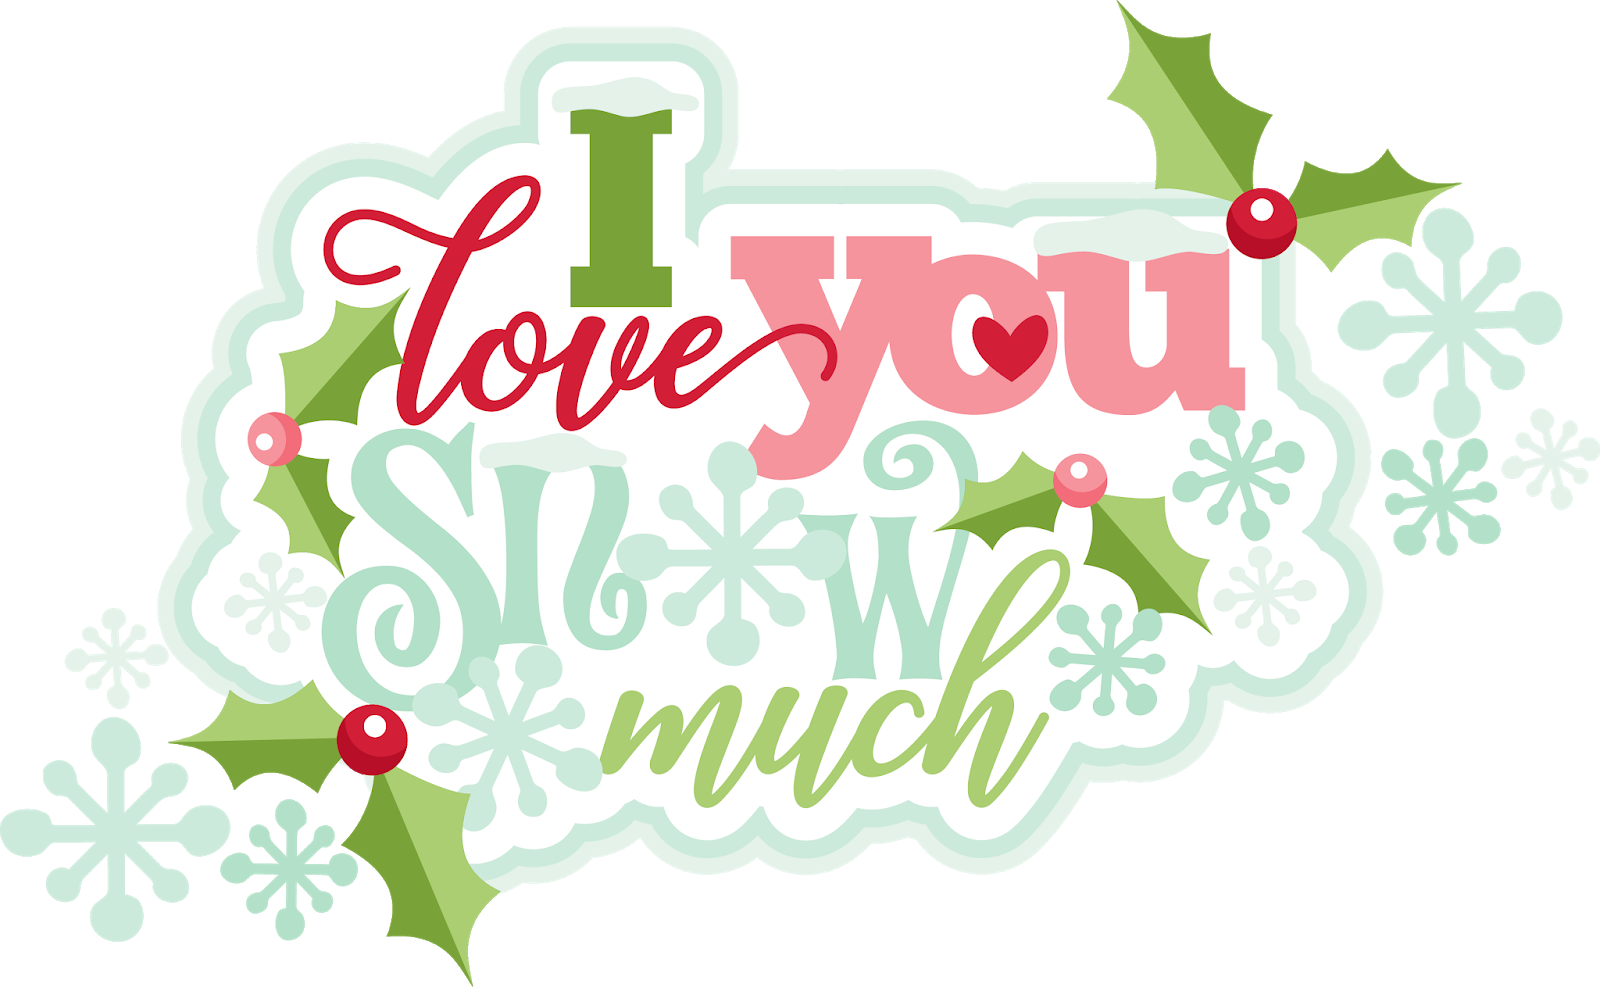 Transparent i love you clipart - Here's How My Layout Looks Completed ~ - Love You Snow Much Clipart